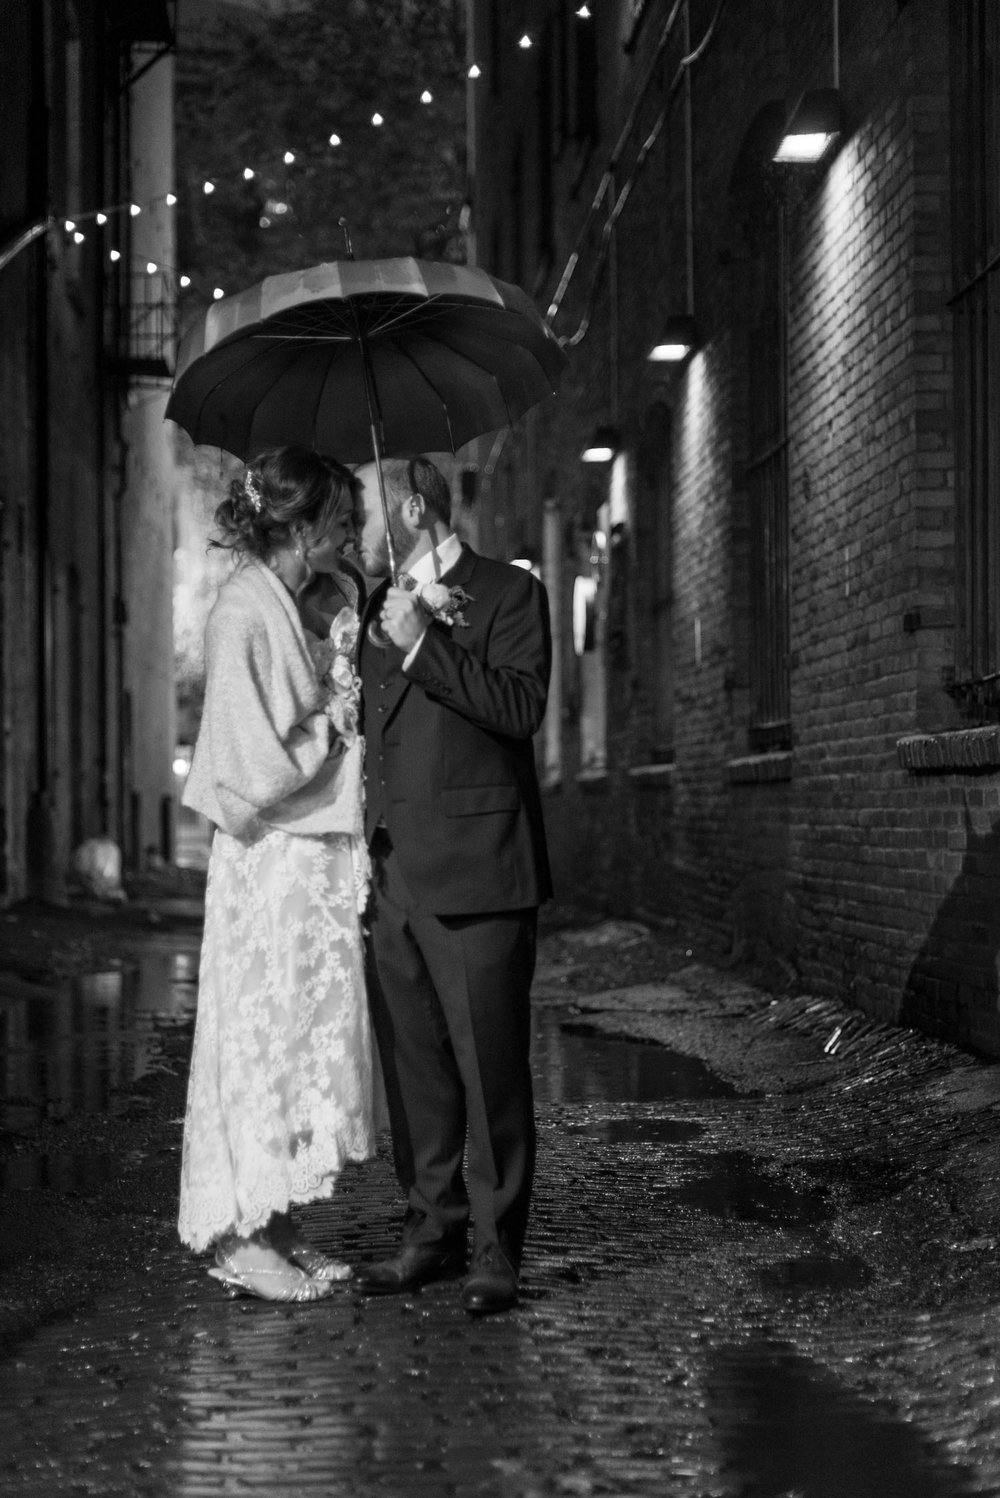 Pioneer Square urban wedding photography